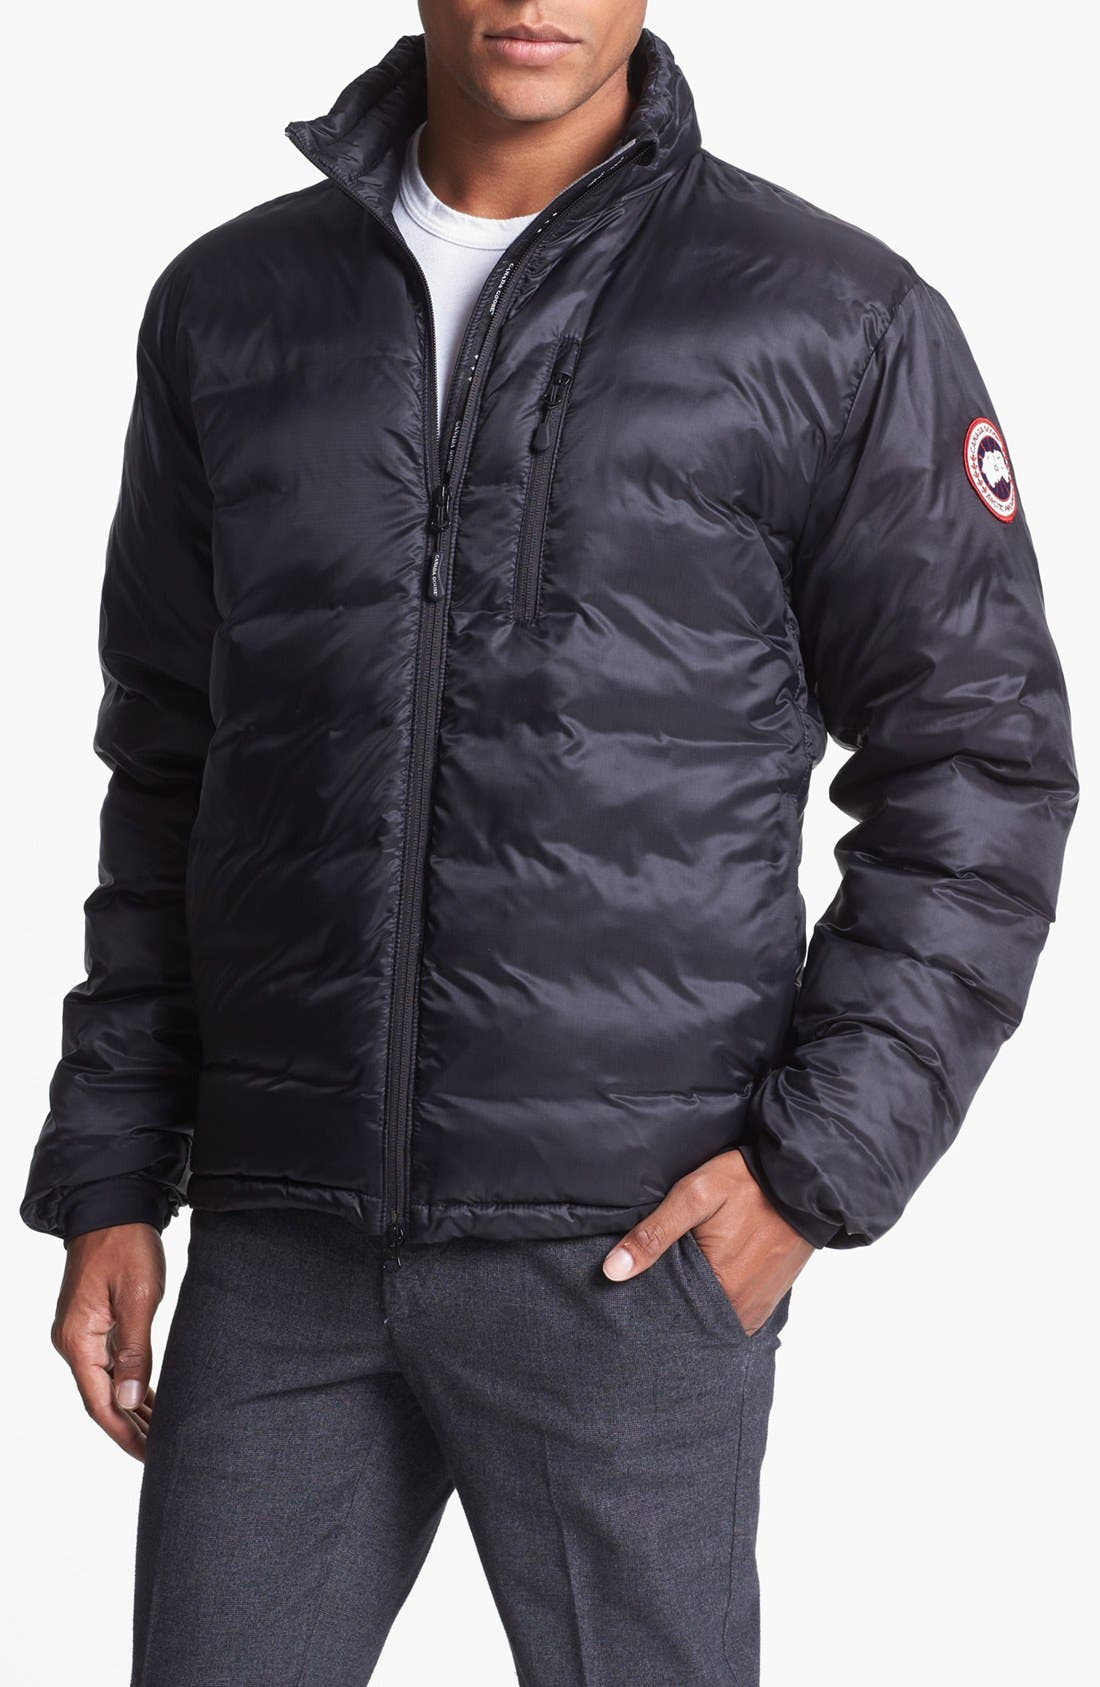 Main Image - Canada Goose 'Lodge' Slim Fit Packable Windproof 750 Down Fill Jacket